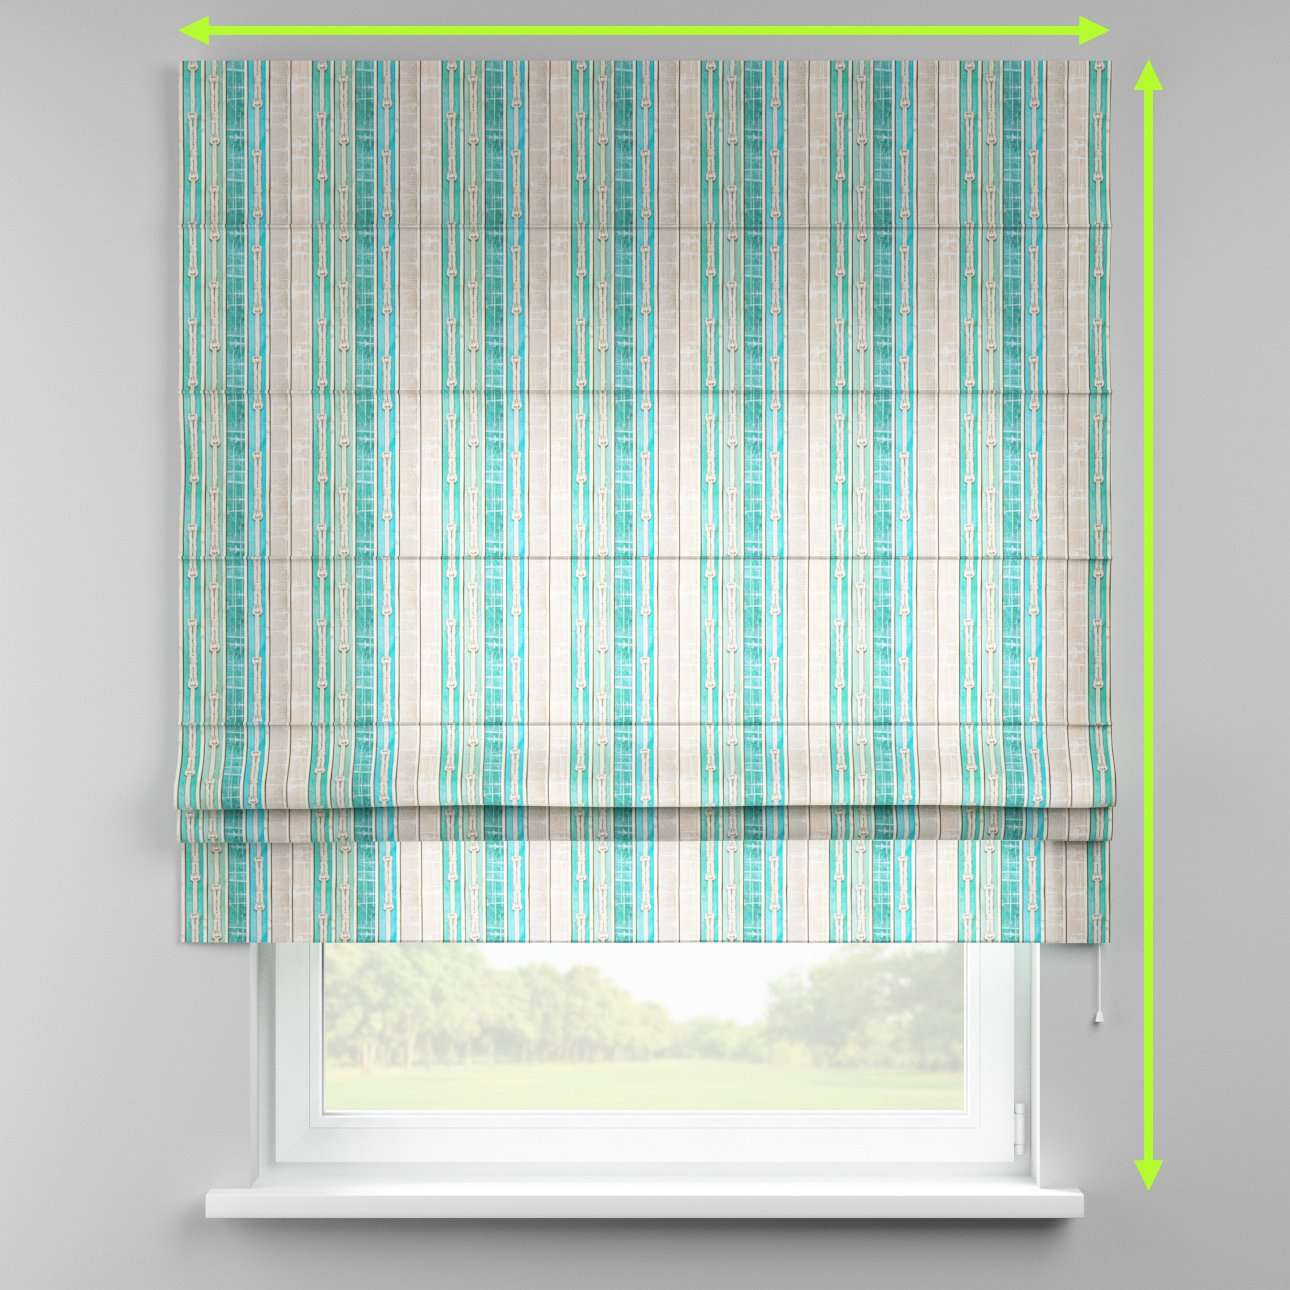 Padva roman blind  in collection Marina, fabric: 140-14